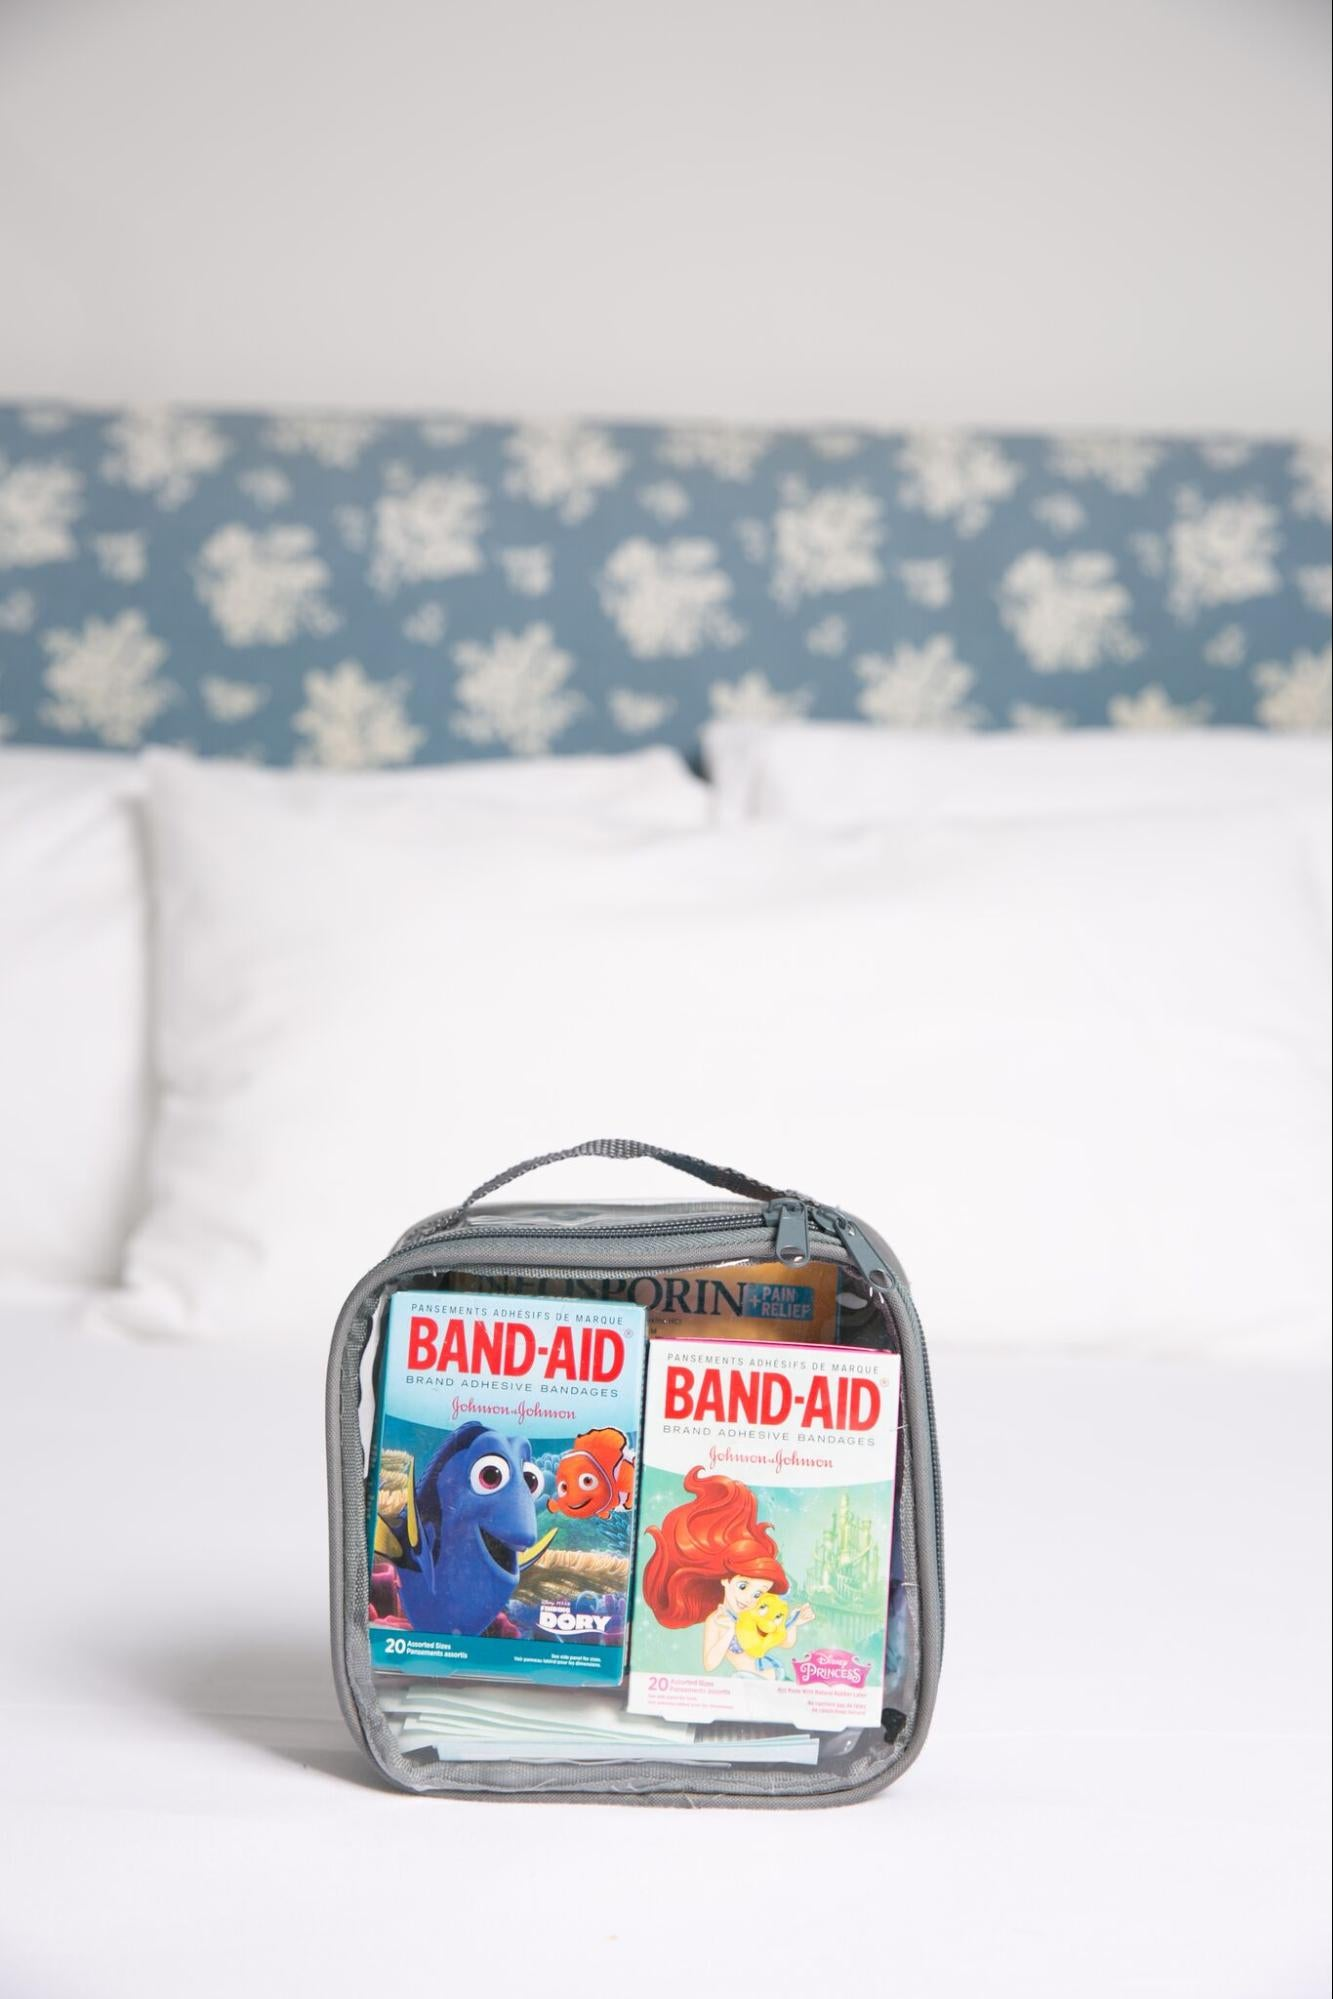 First aid kit for family road trip